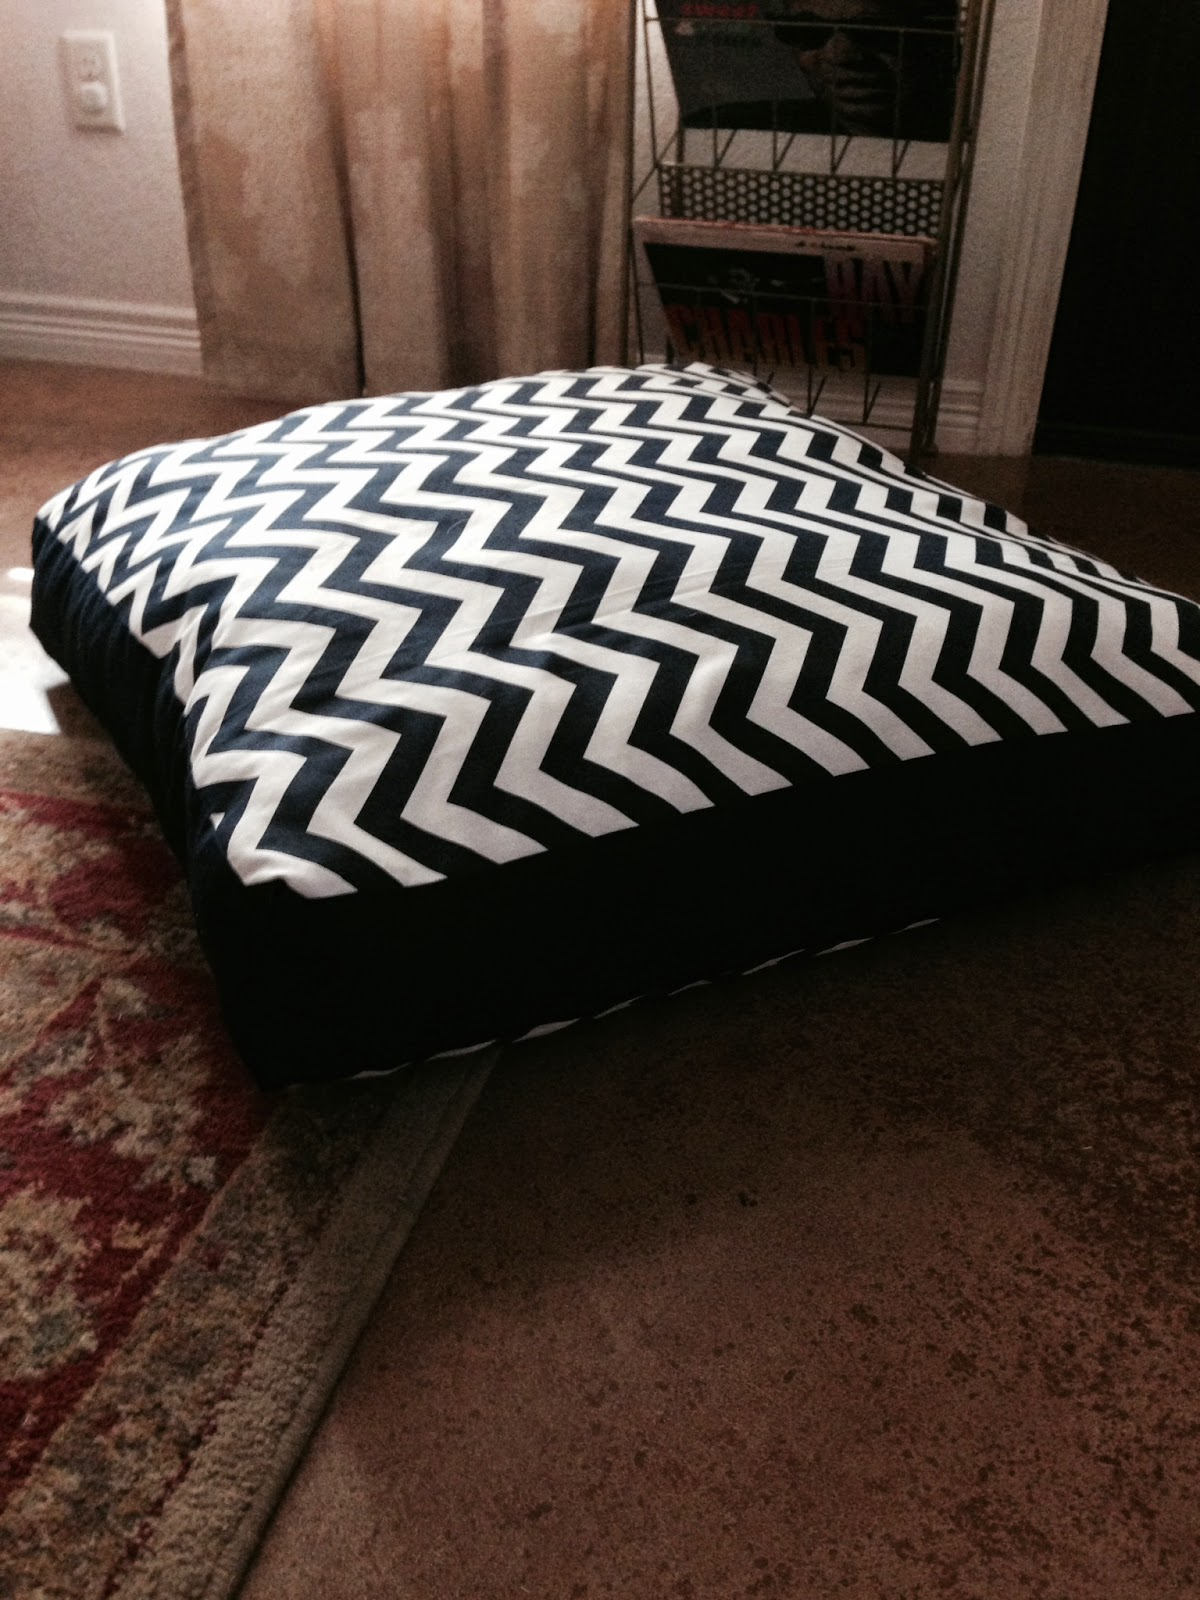 Ashley barrett designs thrifty thursday giant floor pillow what you will need solutioingenieria Gallery